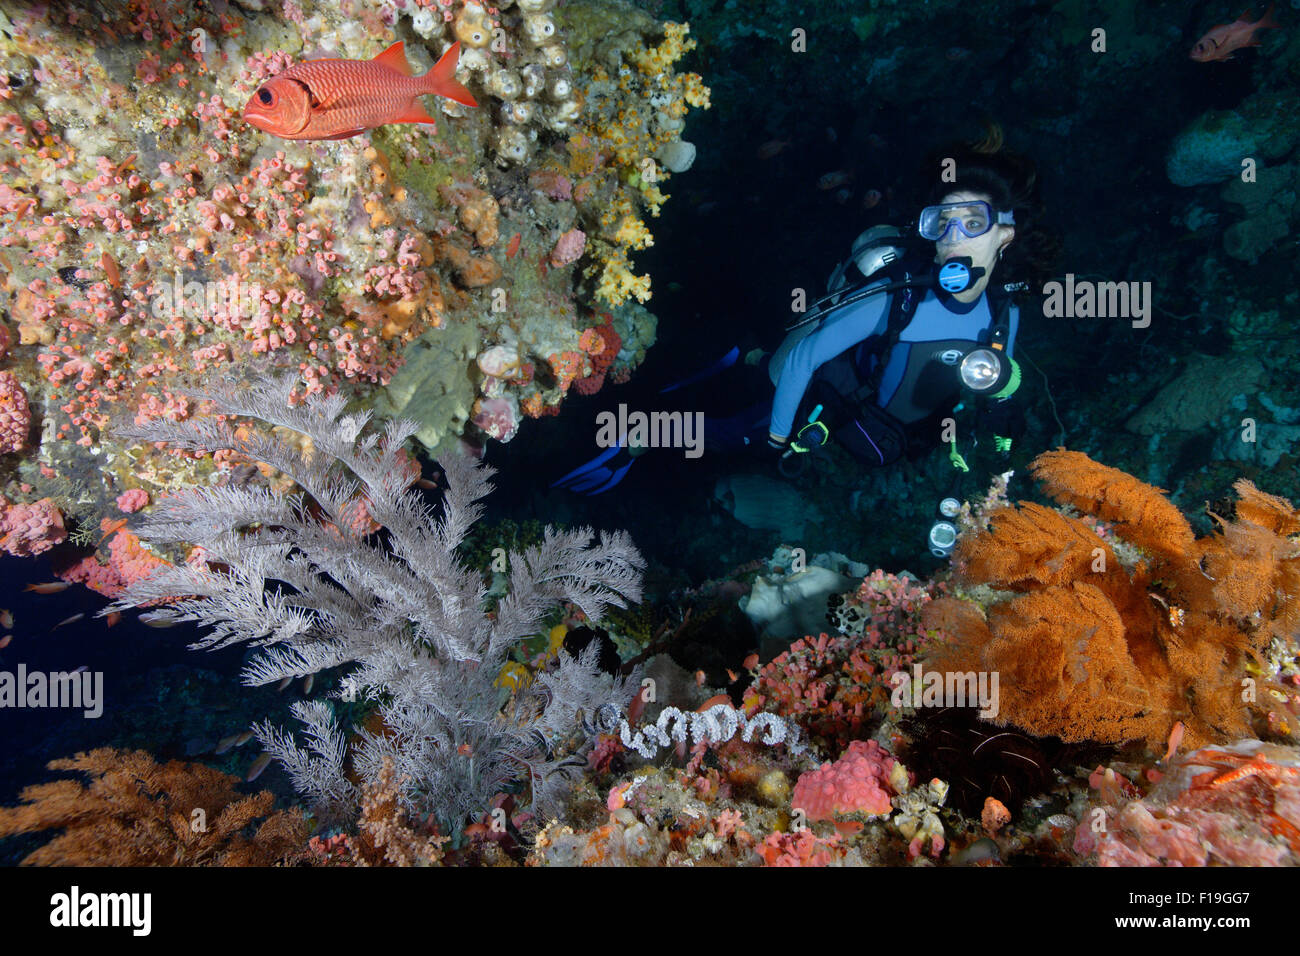 px0452-D. scuba diver (model released) explores cave adorned with black coral bushes. Indonesia, tropical Pacific - Stock Image